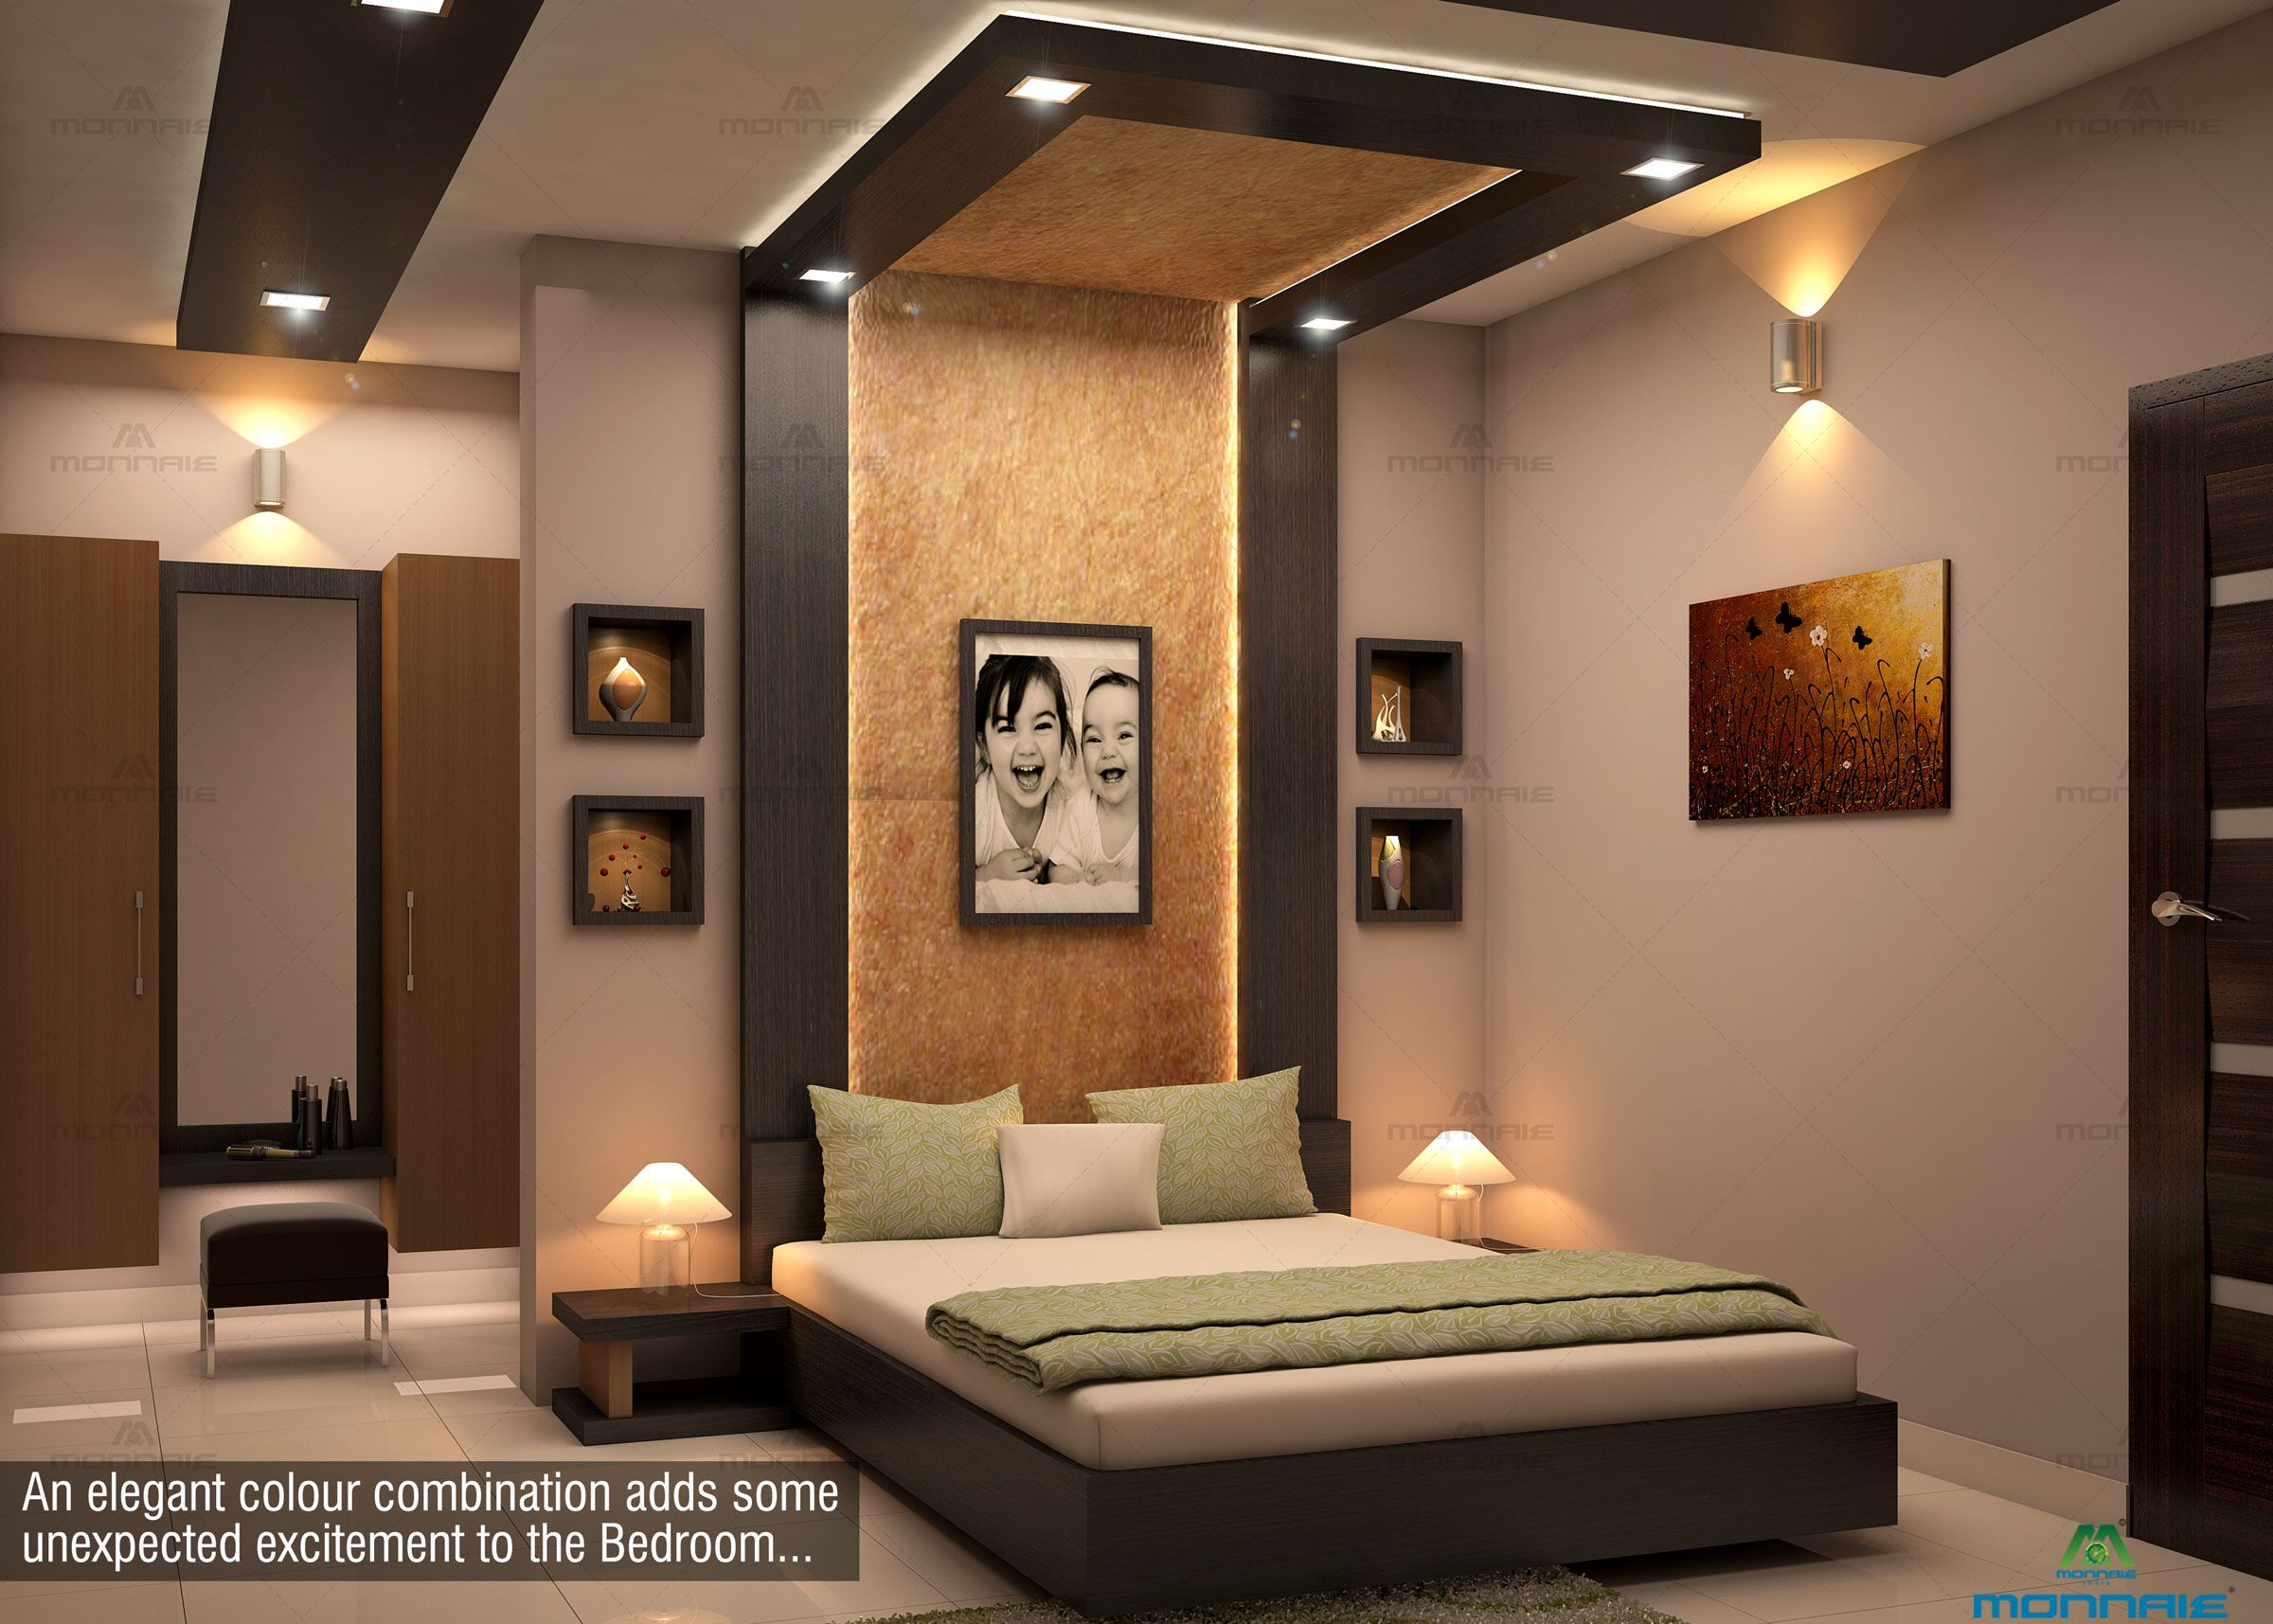 An Elegant Colour Combination Adds Some Unexpected Excitement To The Bedroom For Bedroom False Ceiling Design Modern Bedroom Interior Ceiling Design Bedroom